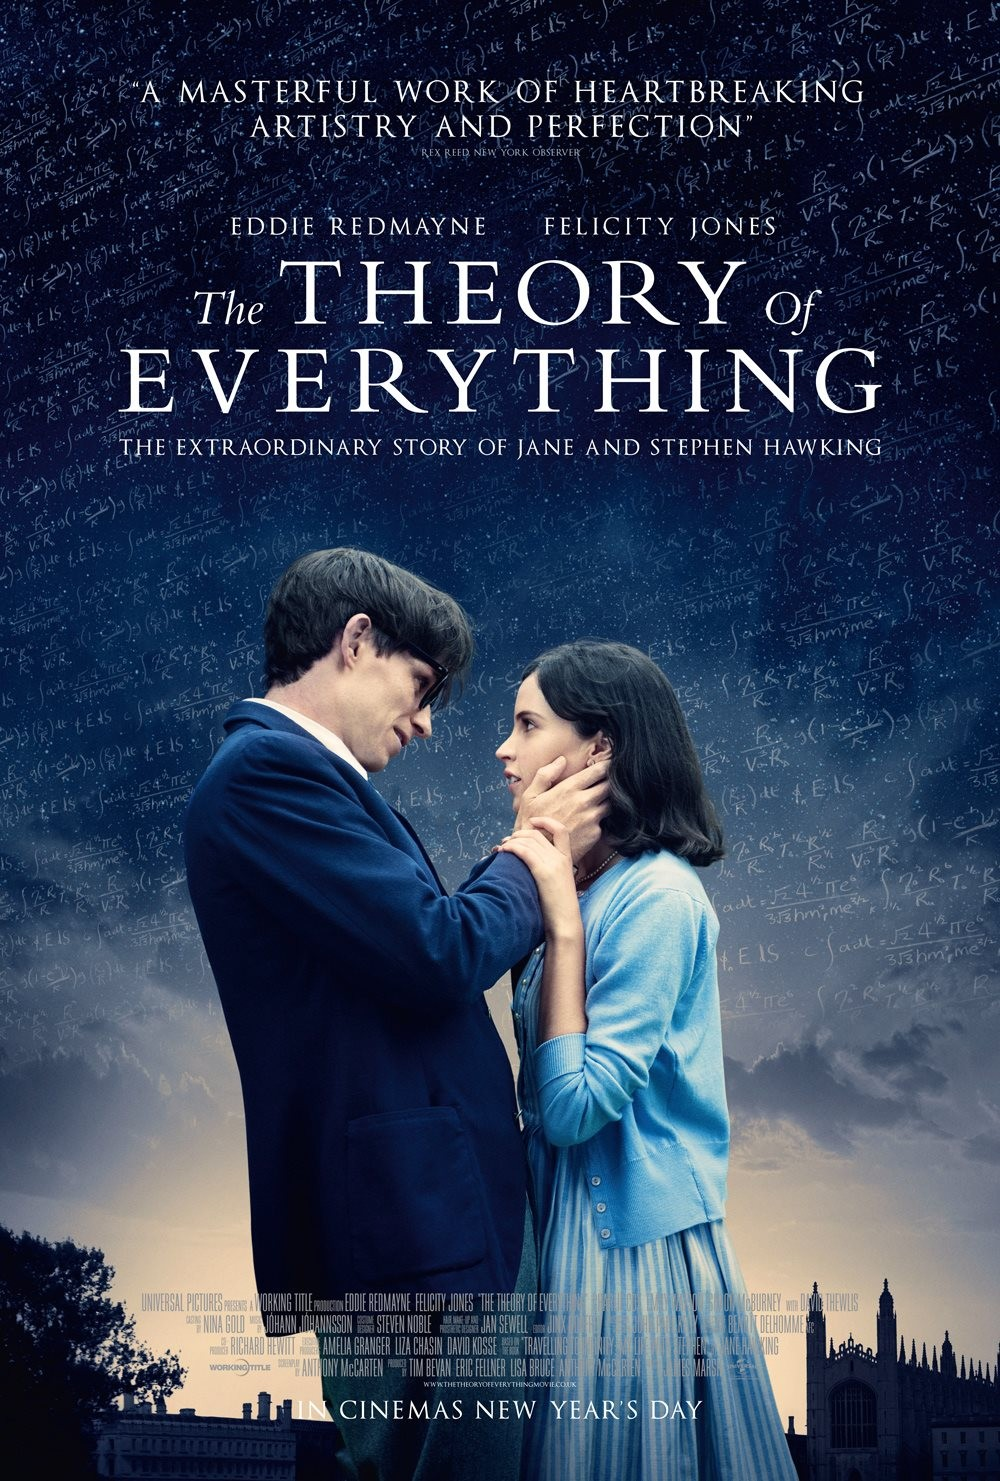 Her Şeyin Teorisi/The Theory of Everything